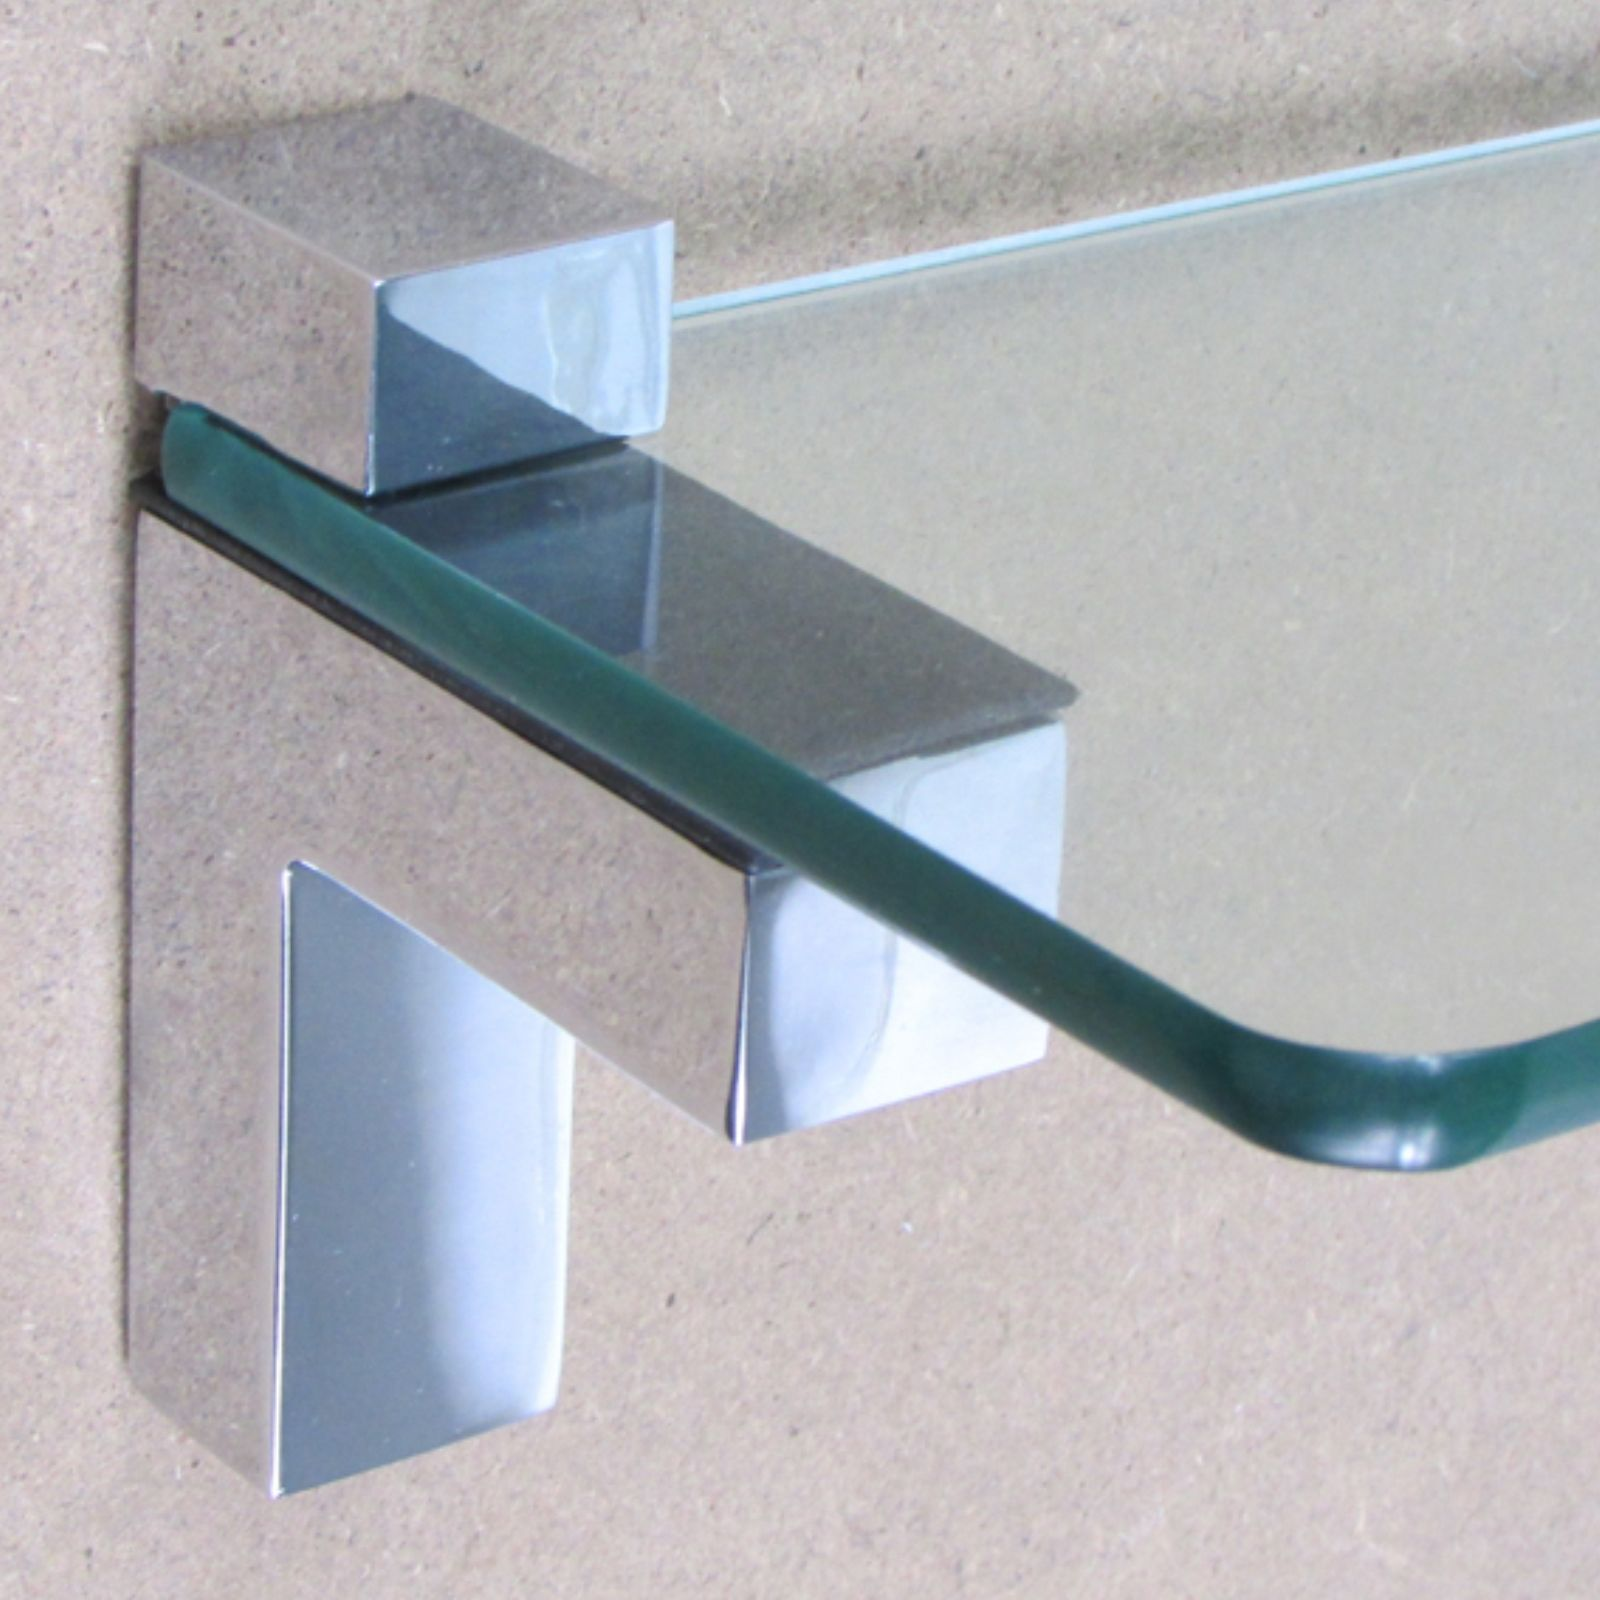 details about shelf brackets for glass wooden acrylic shelves hold floating supports chrome adjustable support fixing wood this item can easy fix any material hangers corner stand